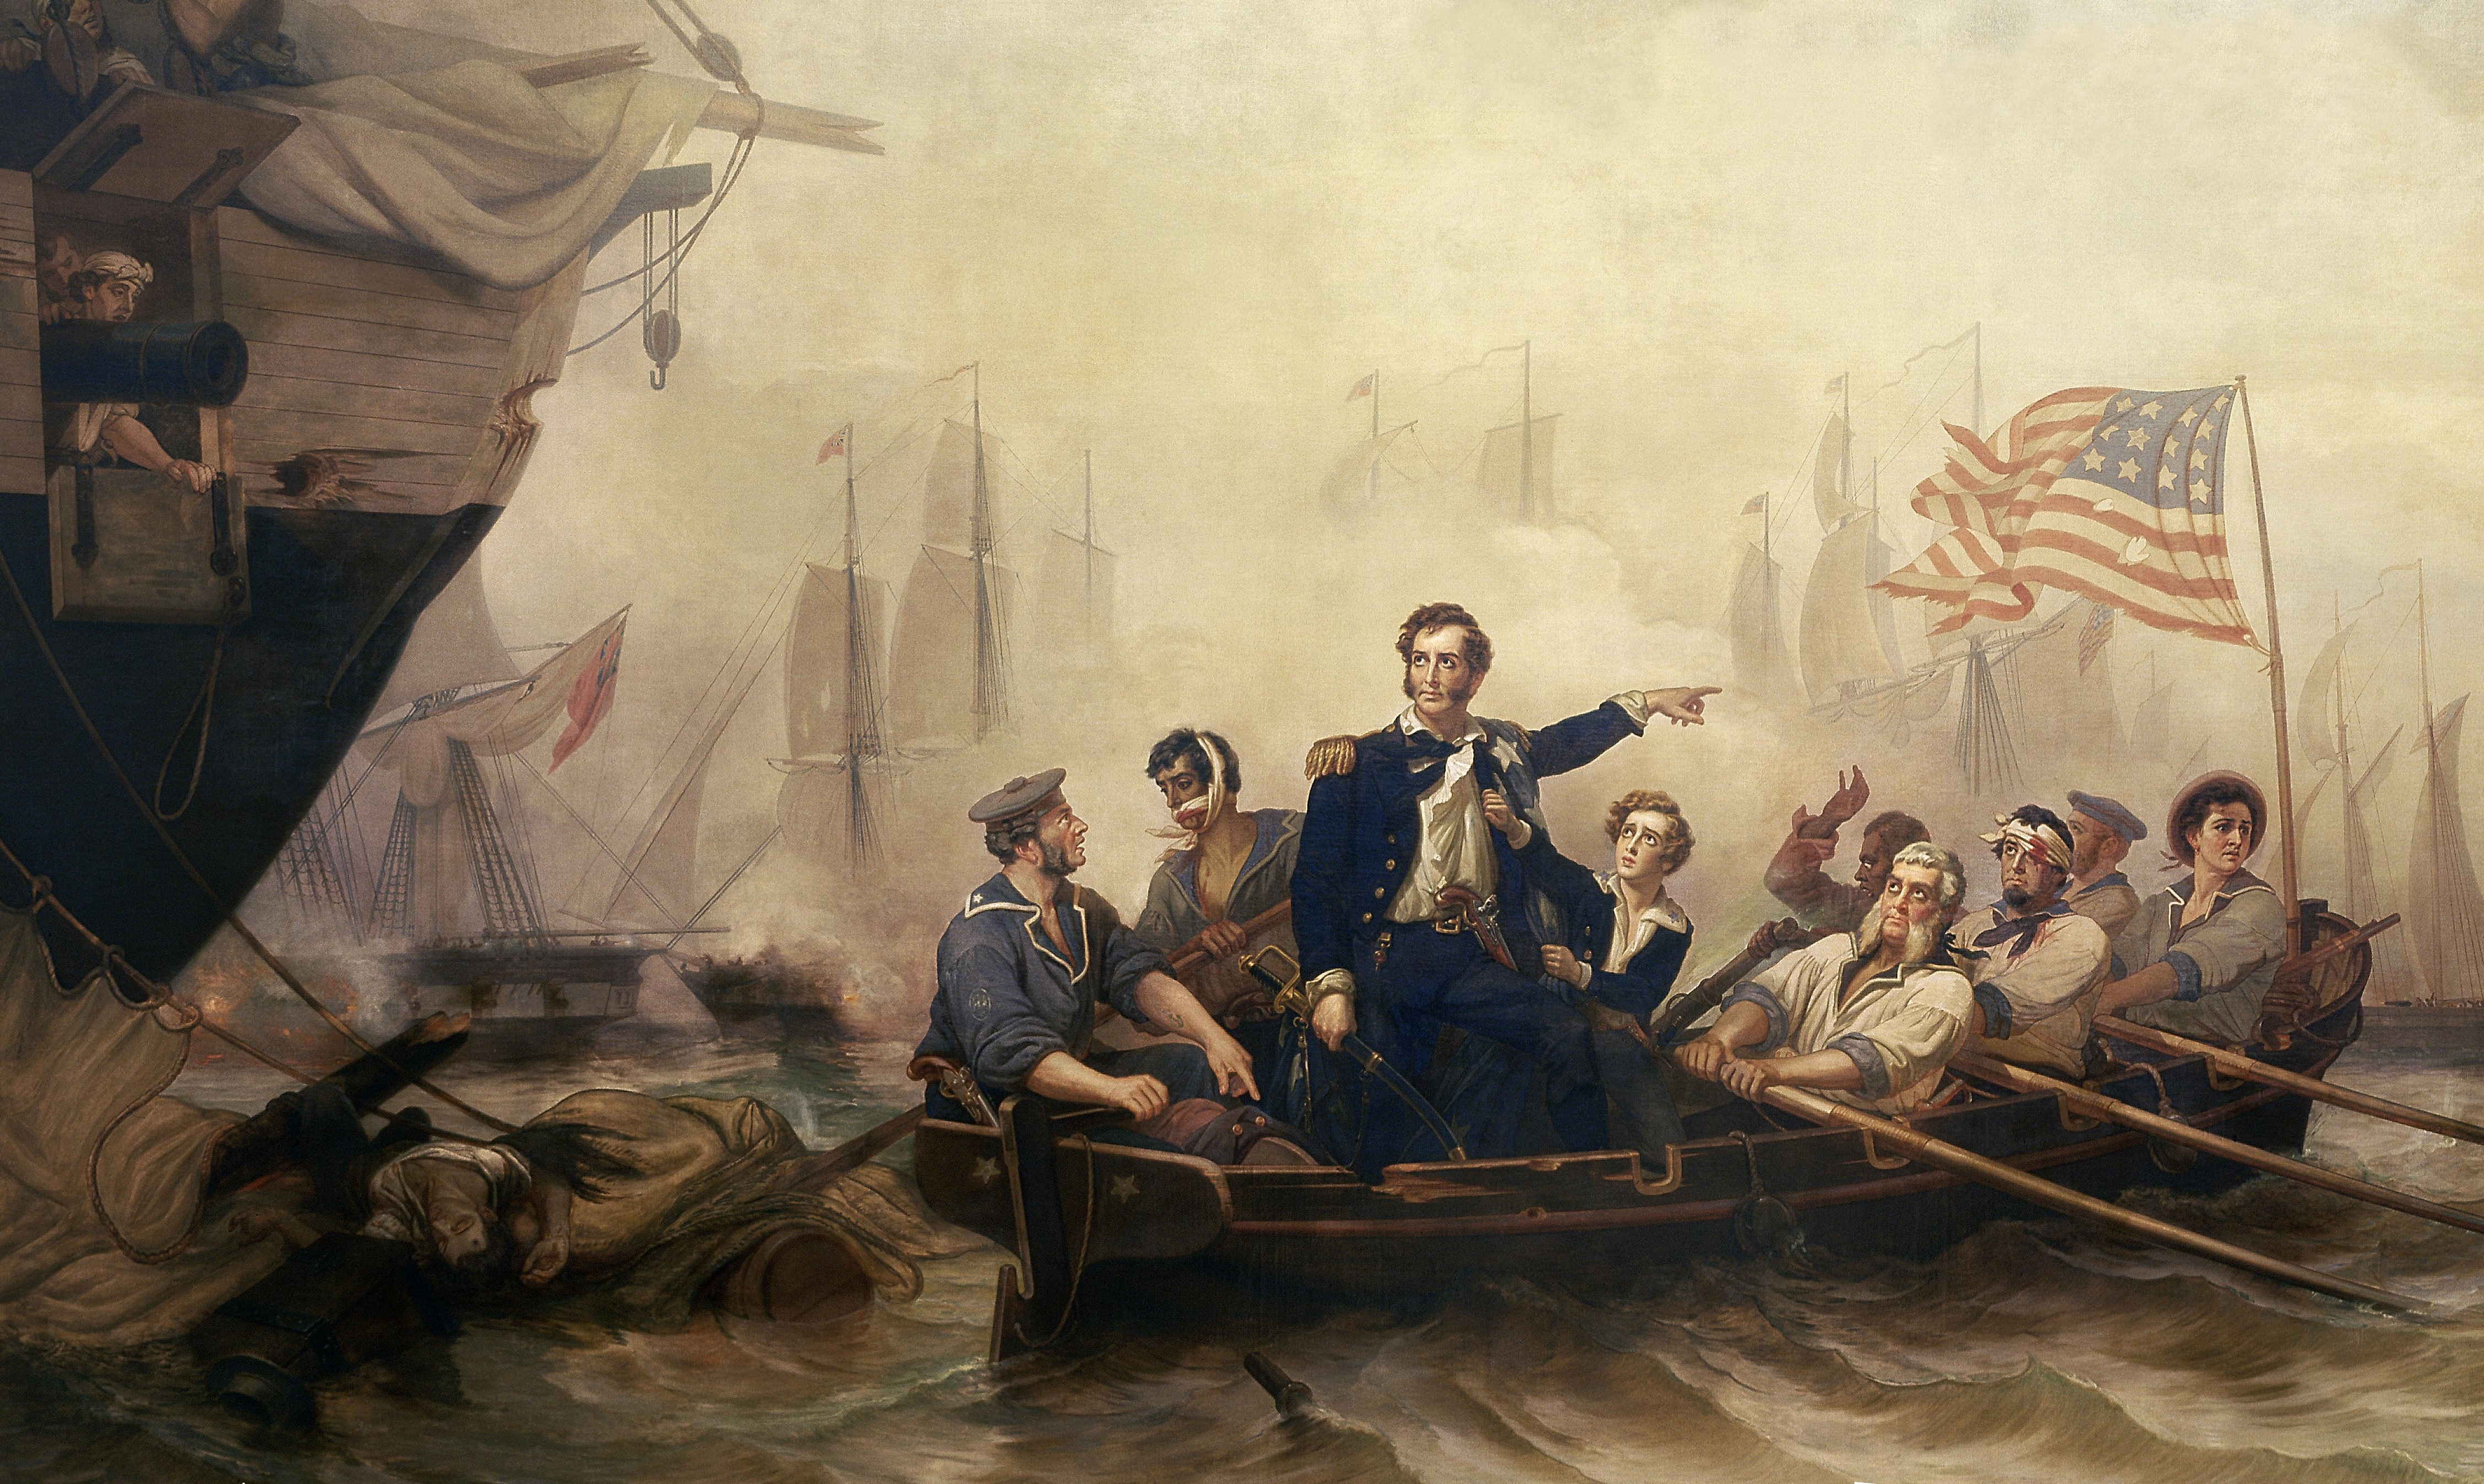 Oliver Hazard Perry used a small boat to transfer from his ruined flagship, the Lawrence, to the Niagara during the War of 1812's Battle of Lake Erie.